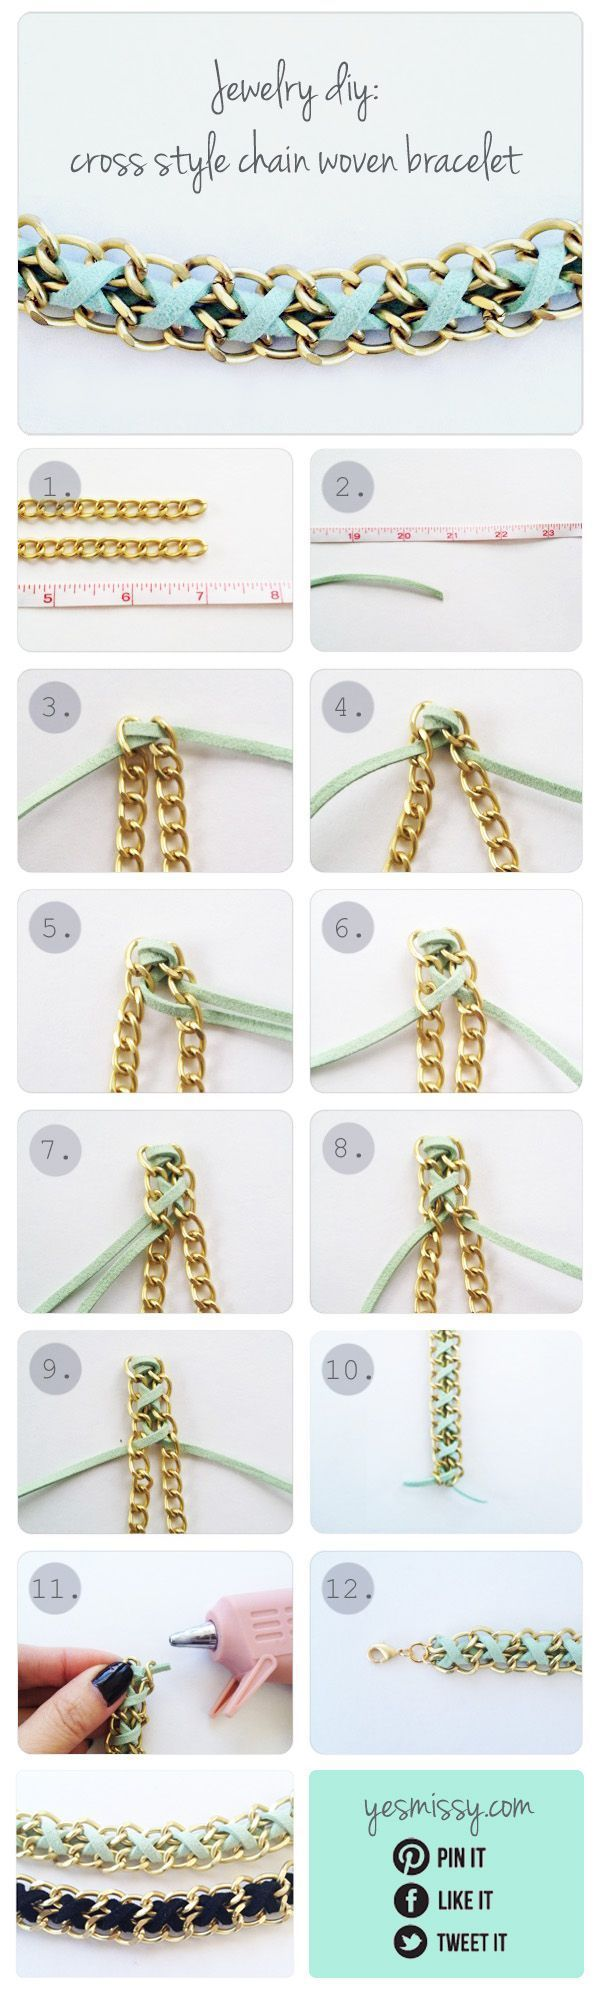 DIY bracelet: How to make your own gorgeous accessories.  More DIY tutorials over at http://www.sewinlove.com.au/category/accessories/